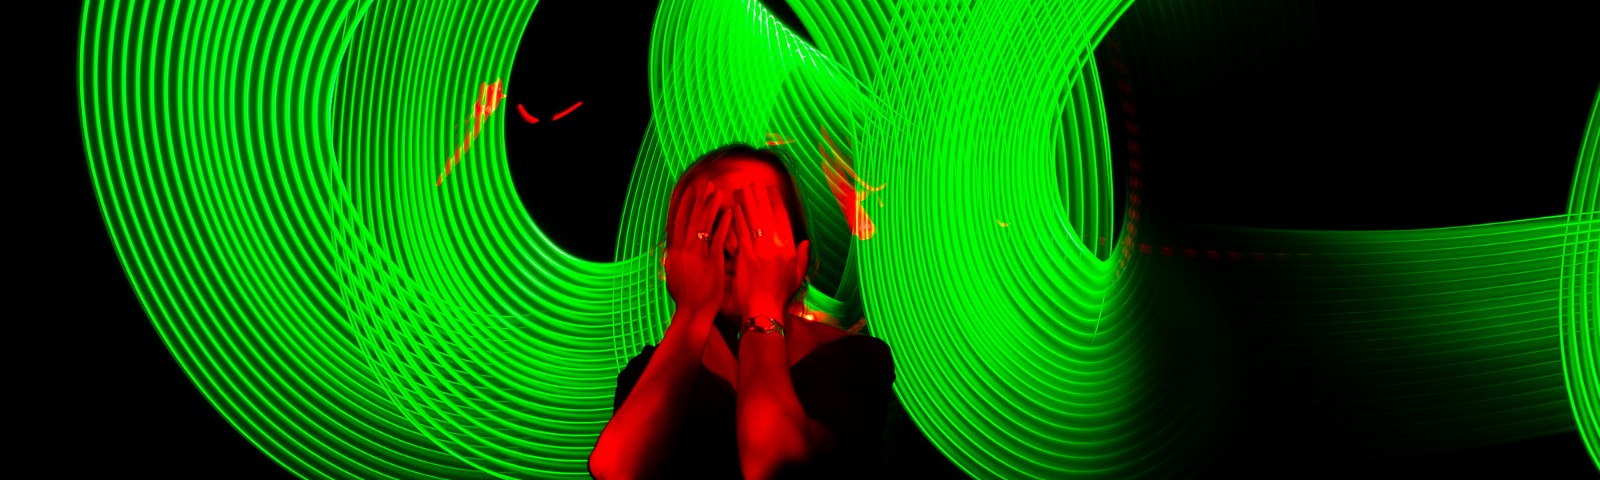 A photo of a person covering their face with their hands. They are illuminated red, and there are green circles around her.